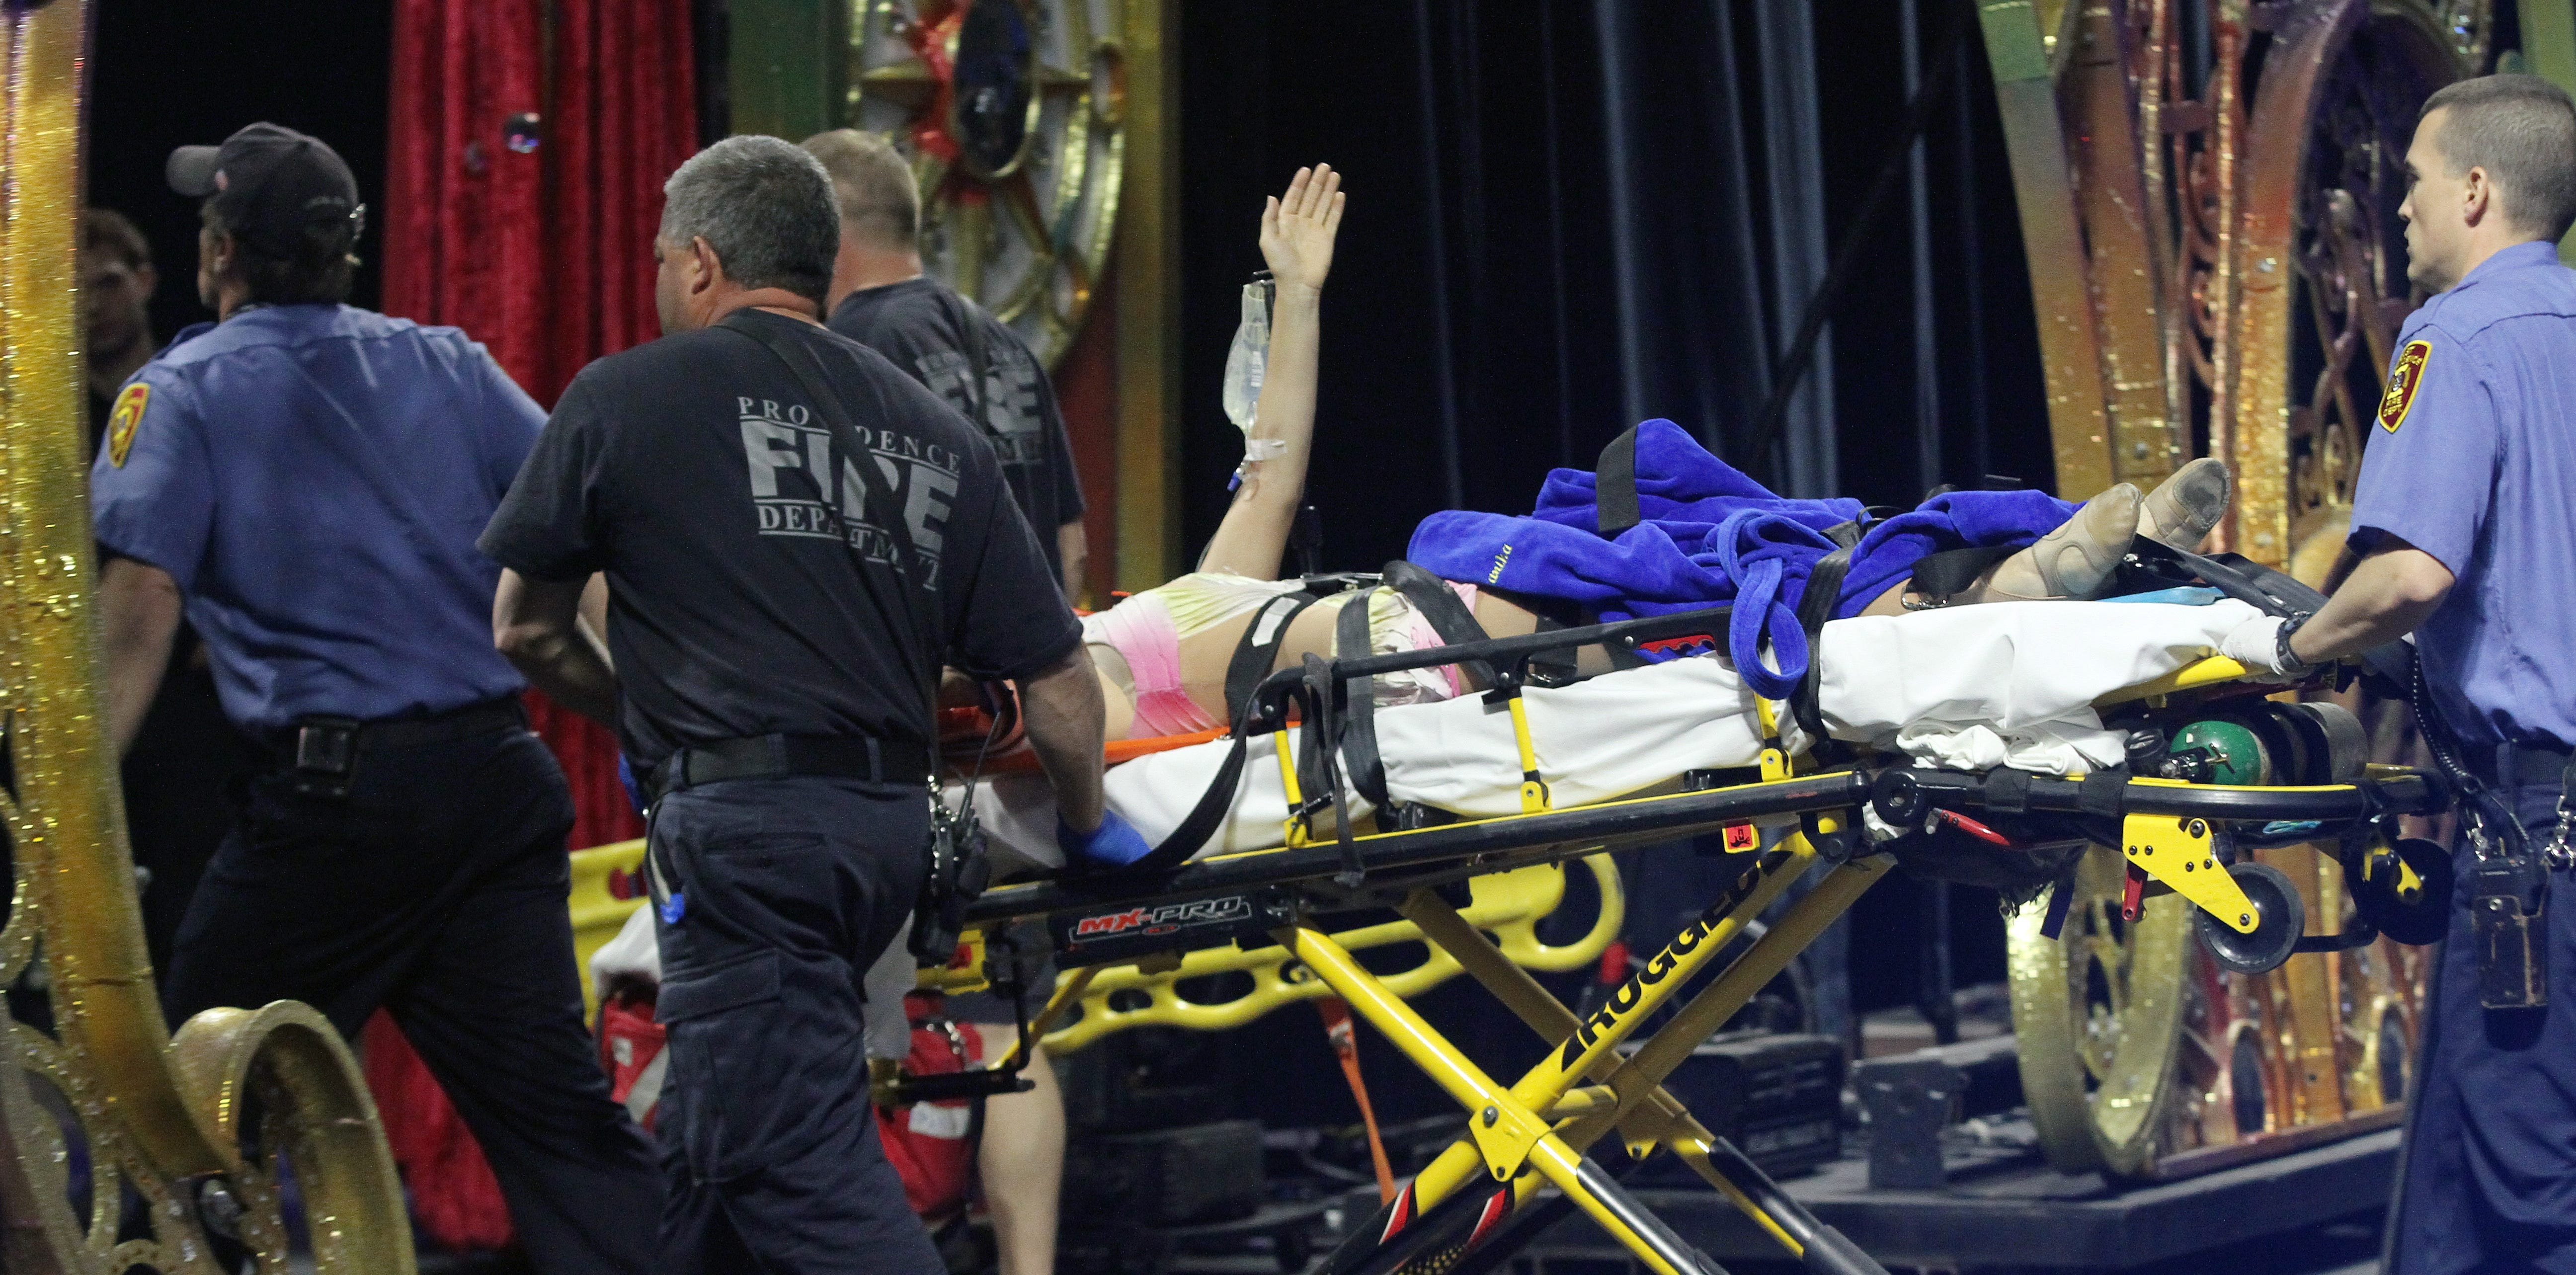 Widny Neves waves to the crowd as she is wheeled out of the Dunkin' Donuts Center after the accident.